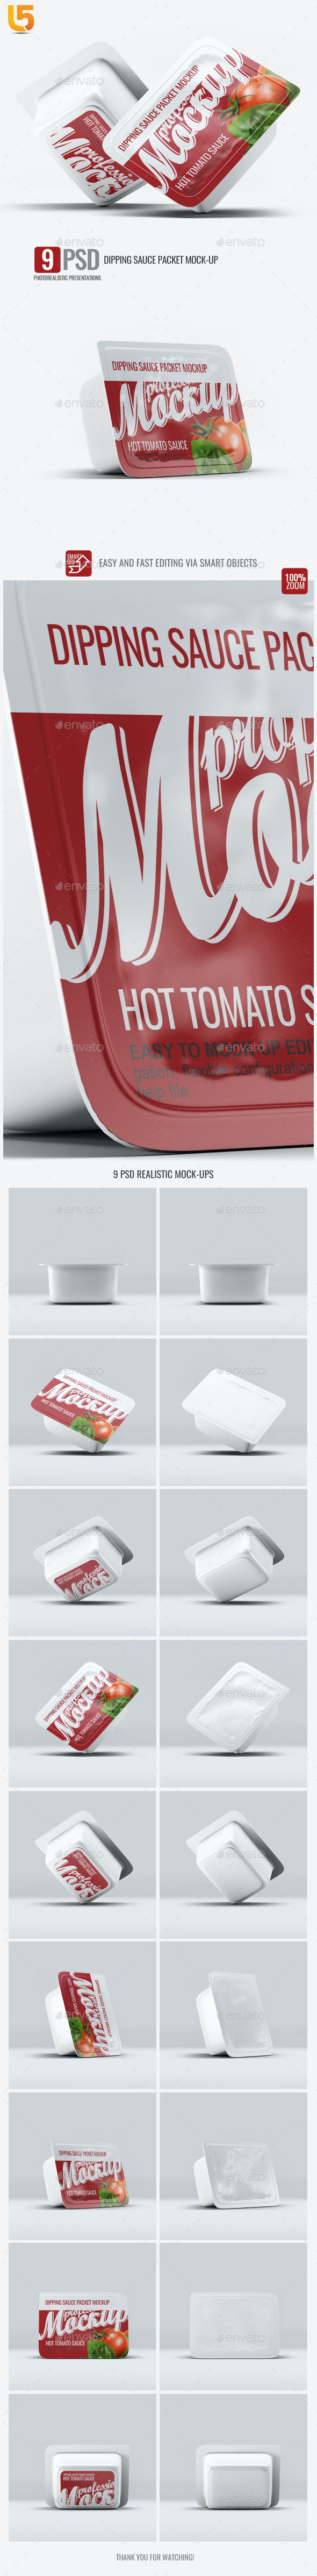 Dipping Sauce Packet Mock-Up - Food and Drink Packaging